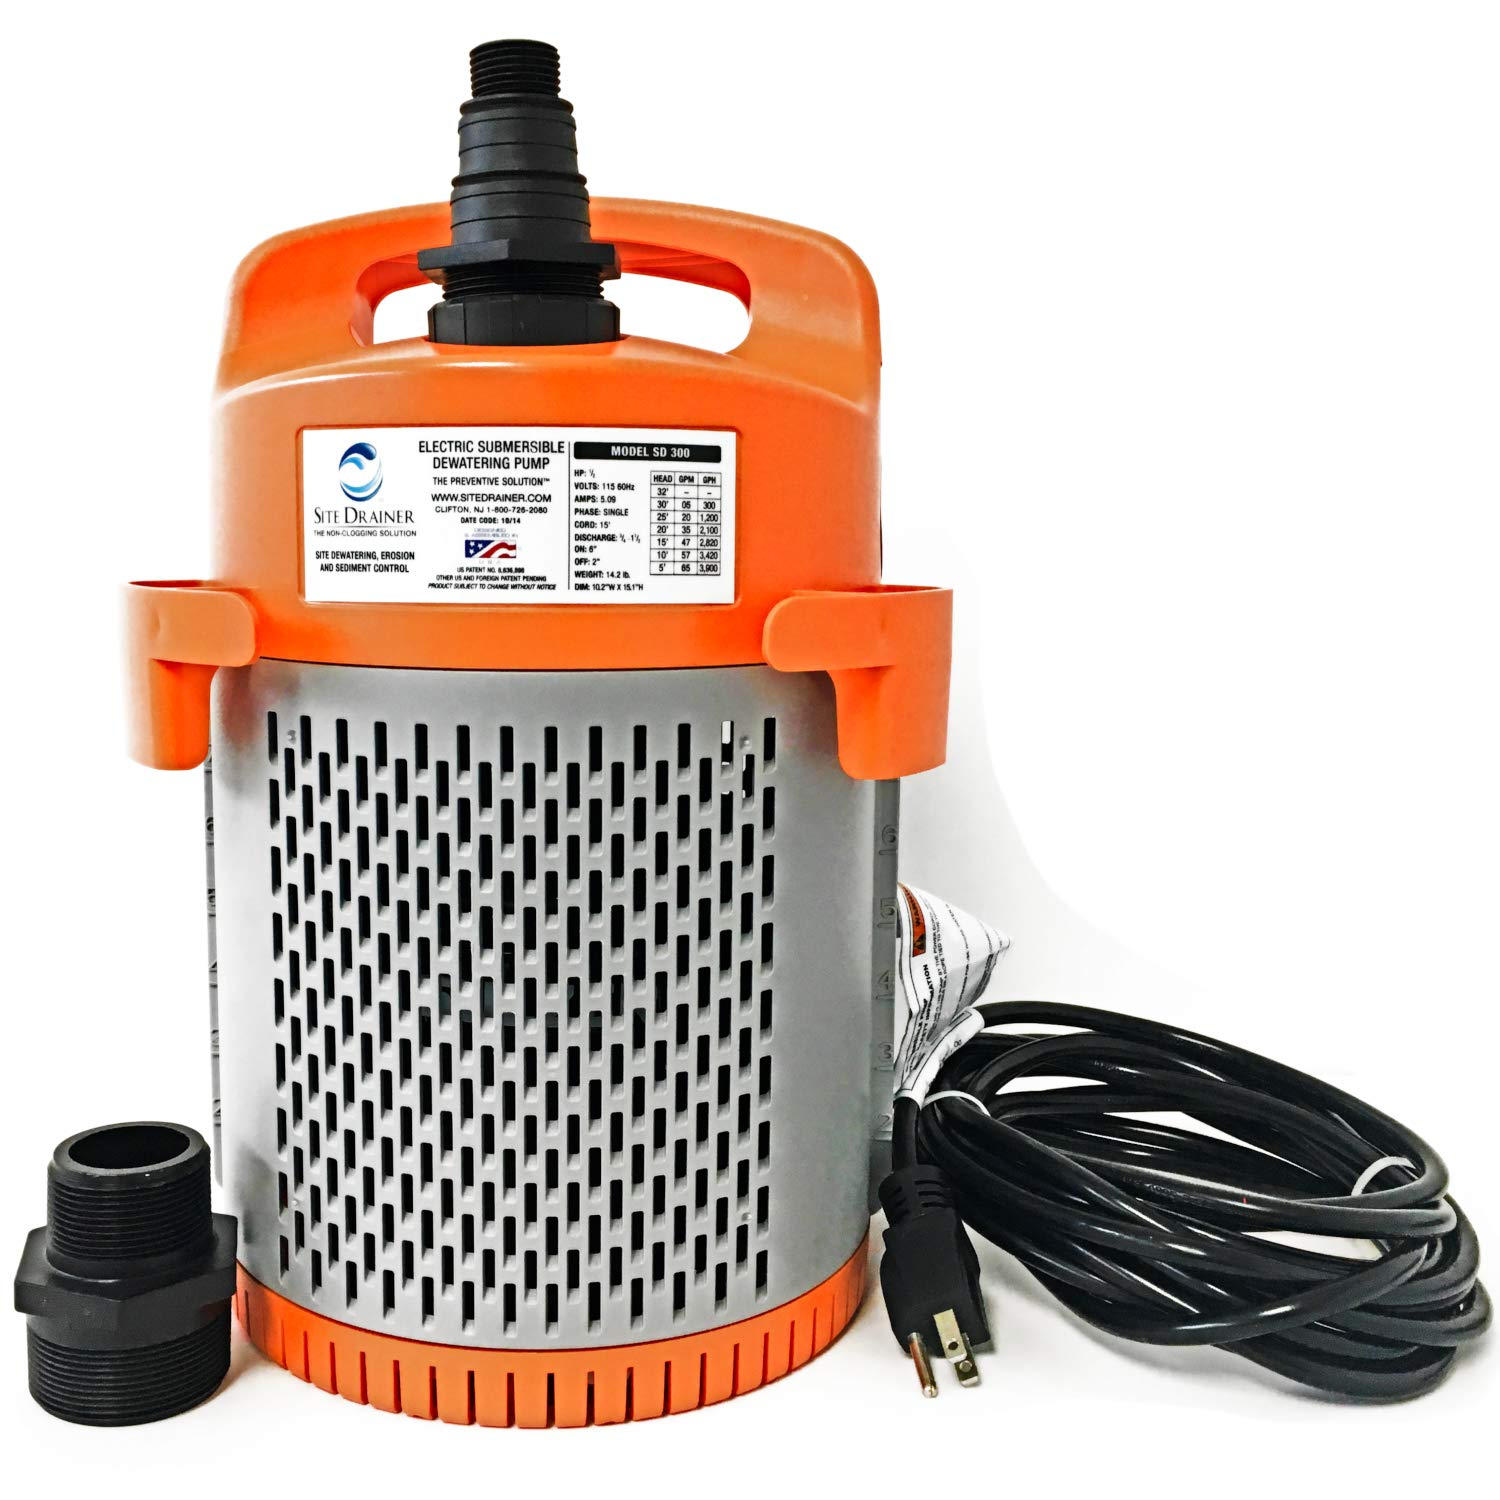 Site Drainer SD 300 1/2 HP Fully Submersible Non-Clogging Dirty Water Dewatering Pump (SD 300)